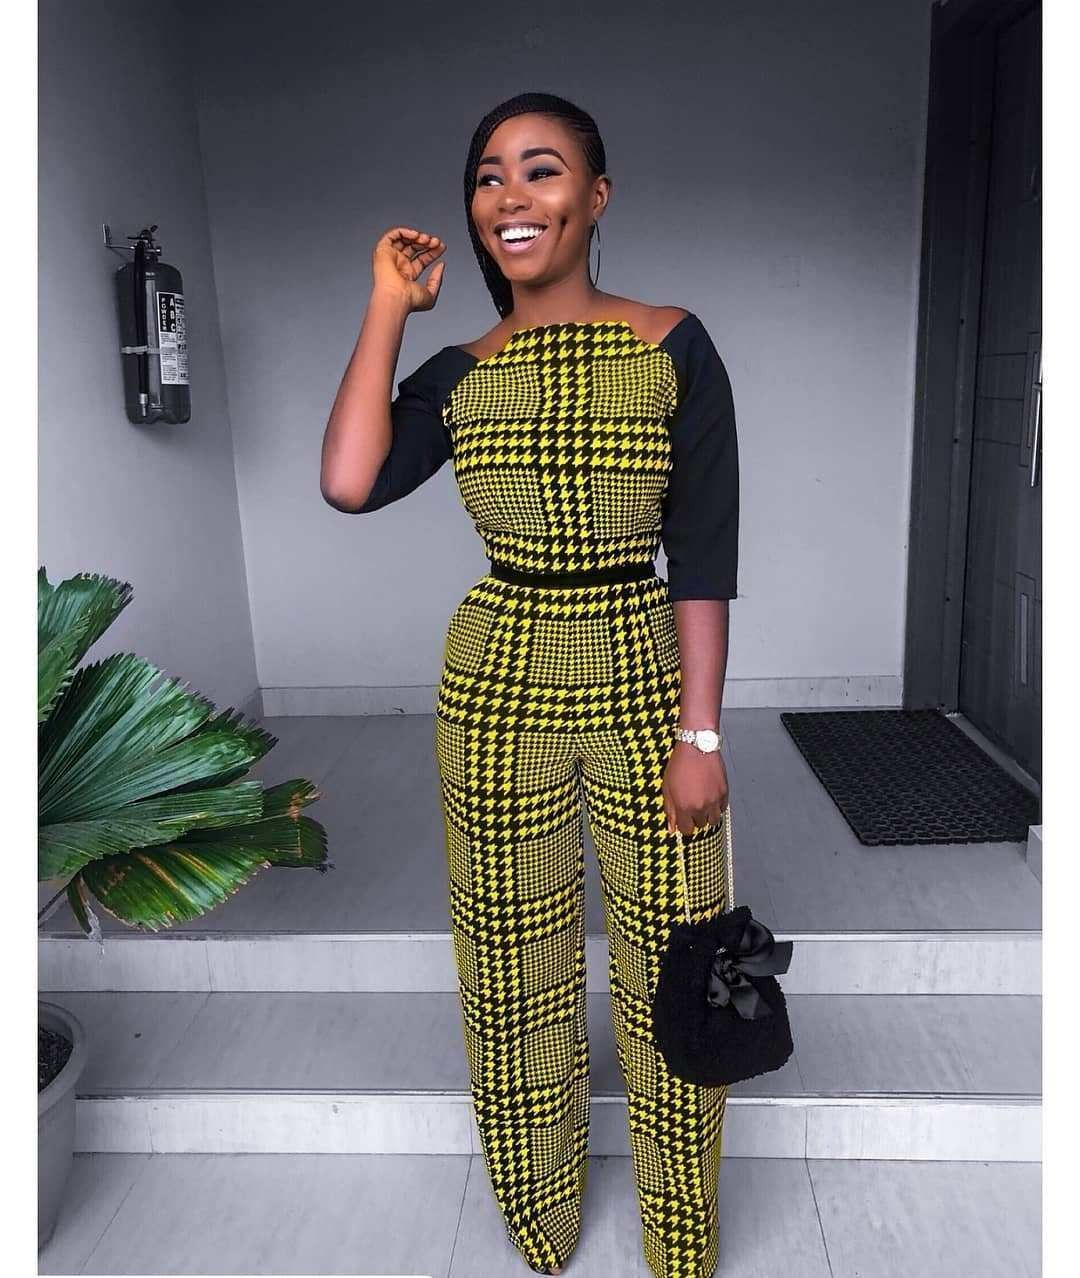 Here are the collection of stylish and trendy Latest Ankara Jumpsuit Styles 2019. This Ankara print is a very trendy fabric at the moment and sewing jumpsuits with them are just so stylish. #AnkaraForShow #ankarastil Here are the collection of stylish and trendy Latest Ankara Jumpsuit Styles 2019. This Ankara print is a very trendy fabric at the moment and sewing jumpsuits with them are just so stylish. #AnkaraForShow #ankarastil Here are the collection of stylish and trendy Latest Ankara Jumpsu #ankarastil